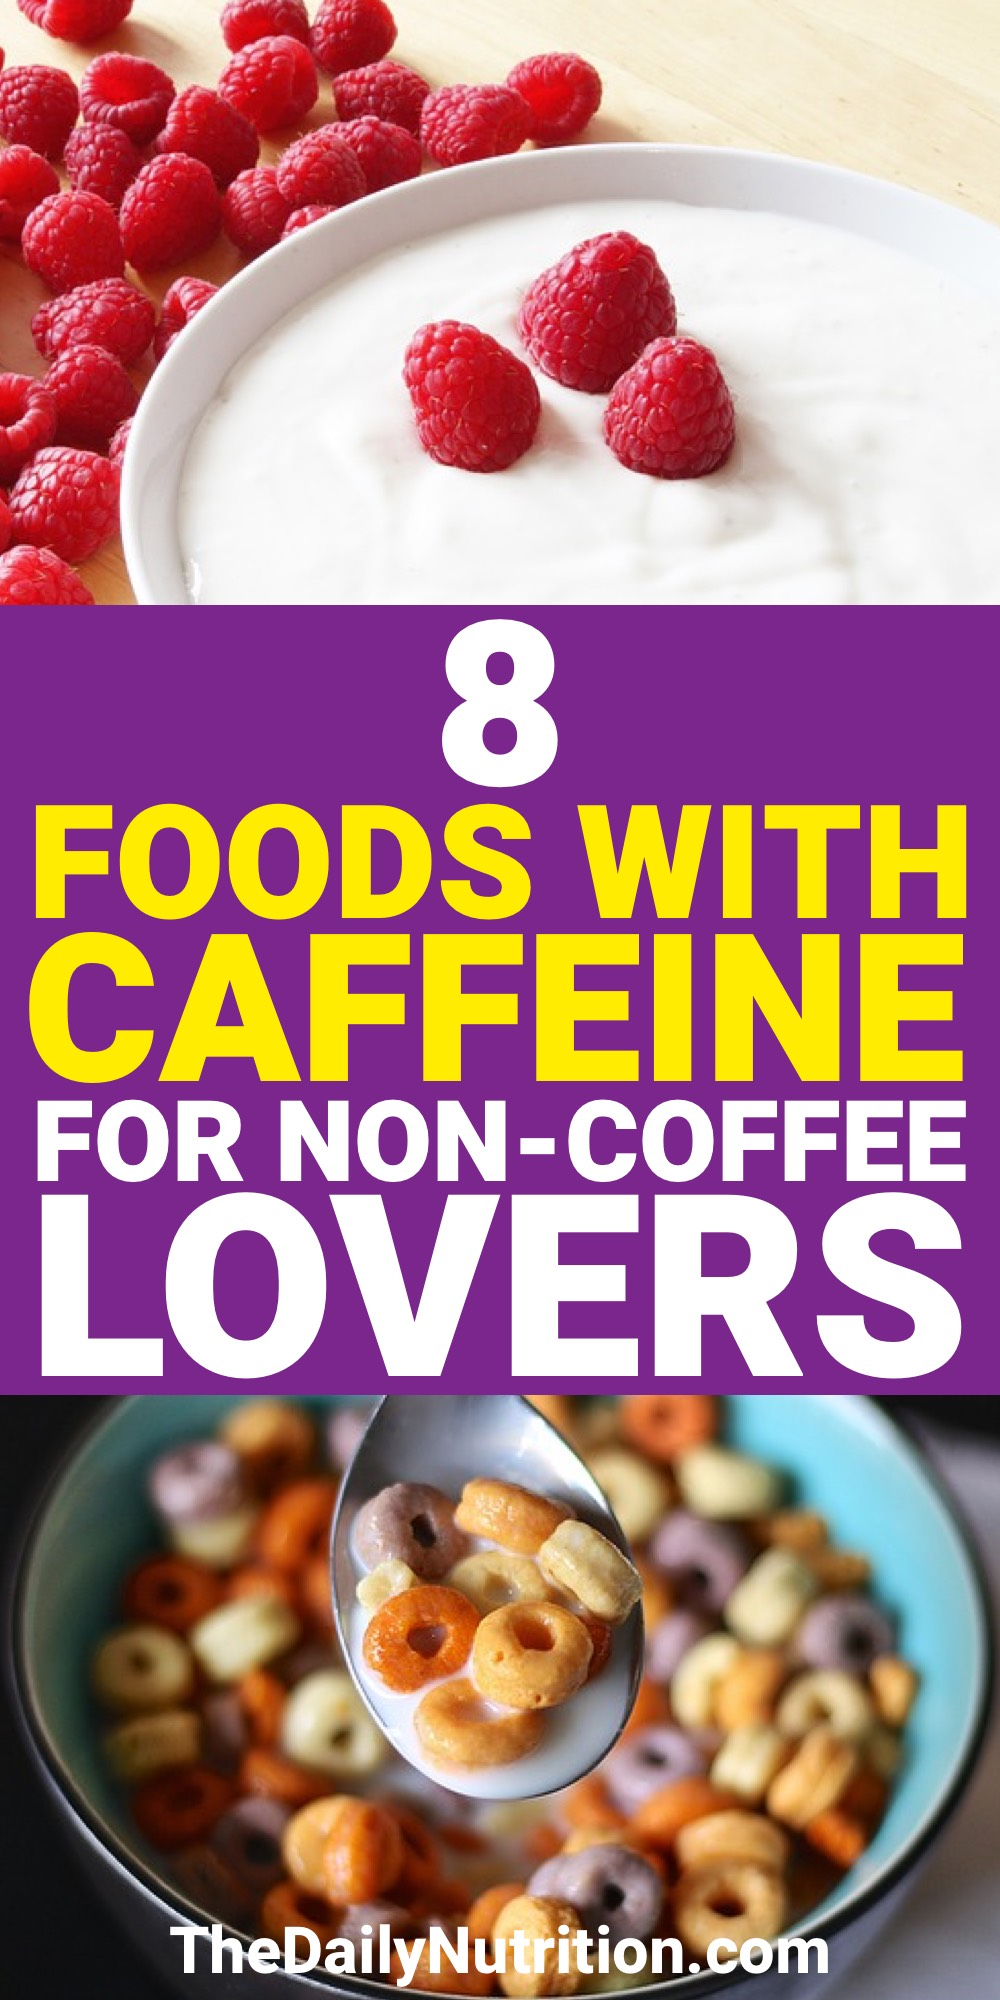 Caffeine is something that people need to get through their day. Here are foods that have caffeine for when you don't want coffee.